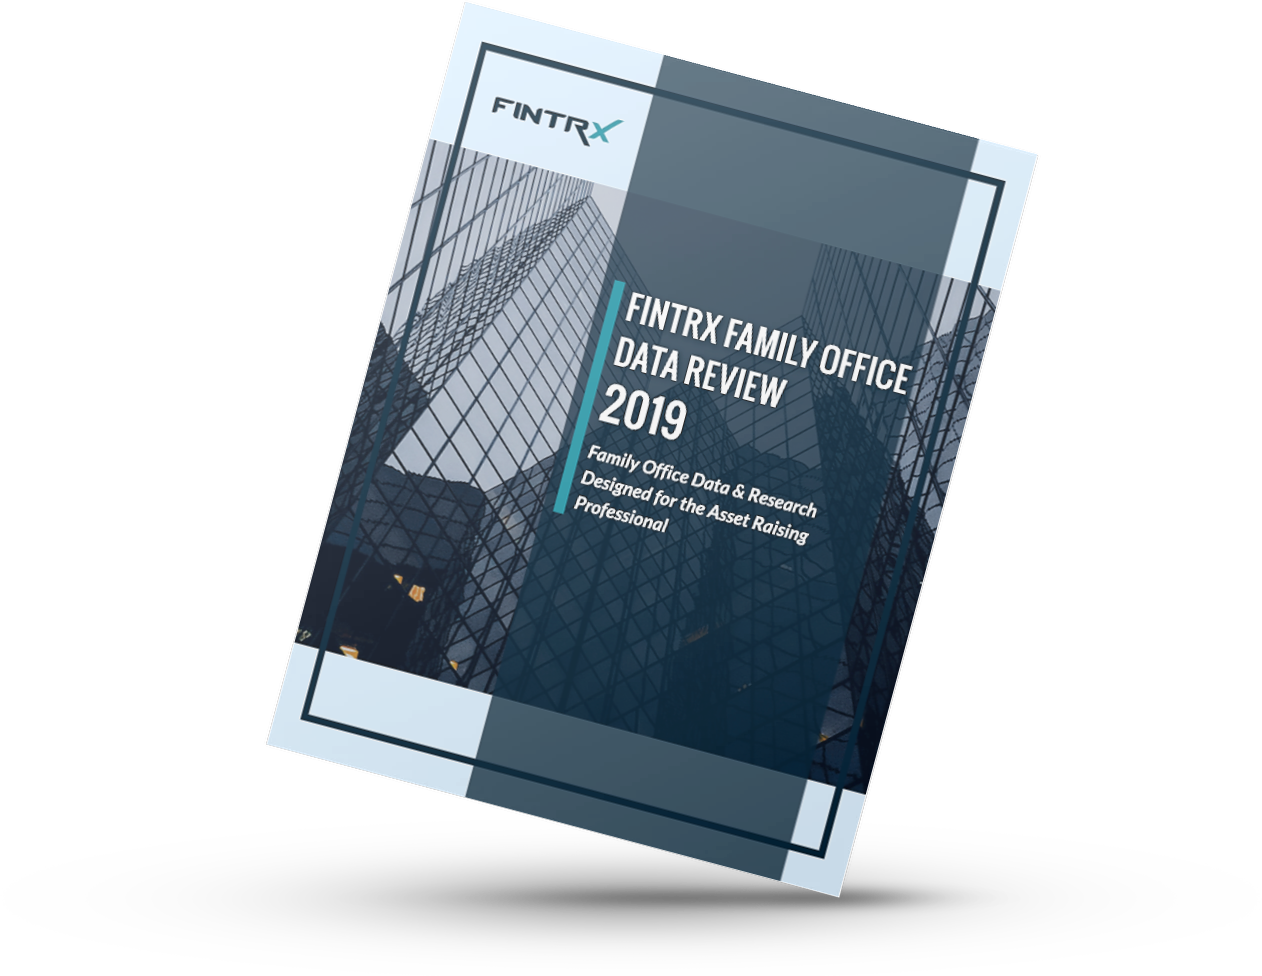 FINTRX Family Office Data Trends